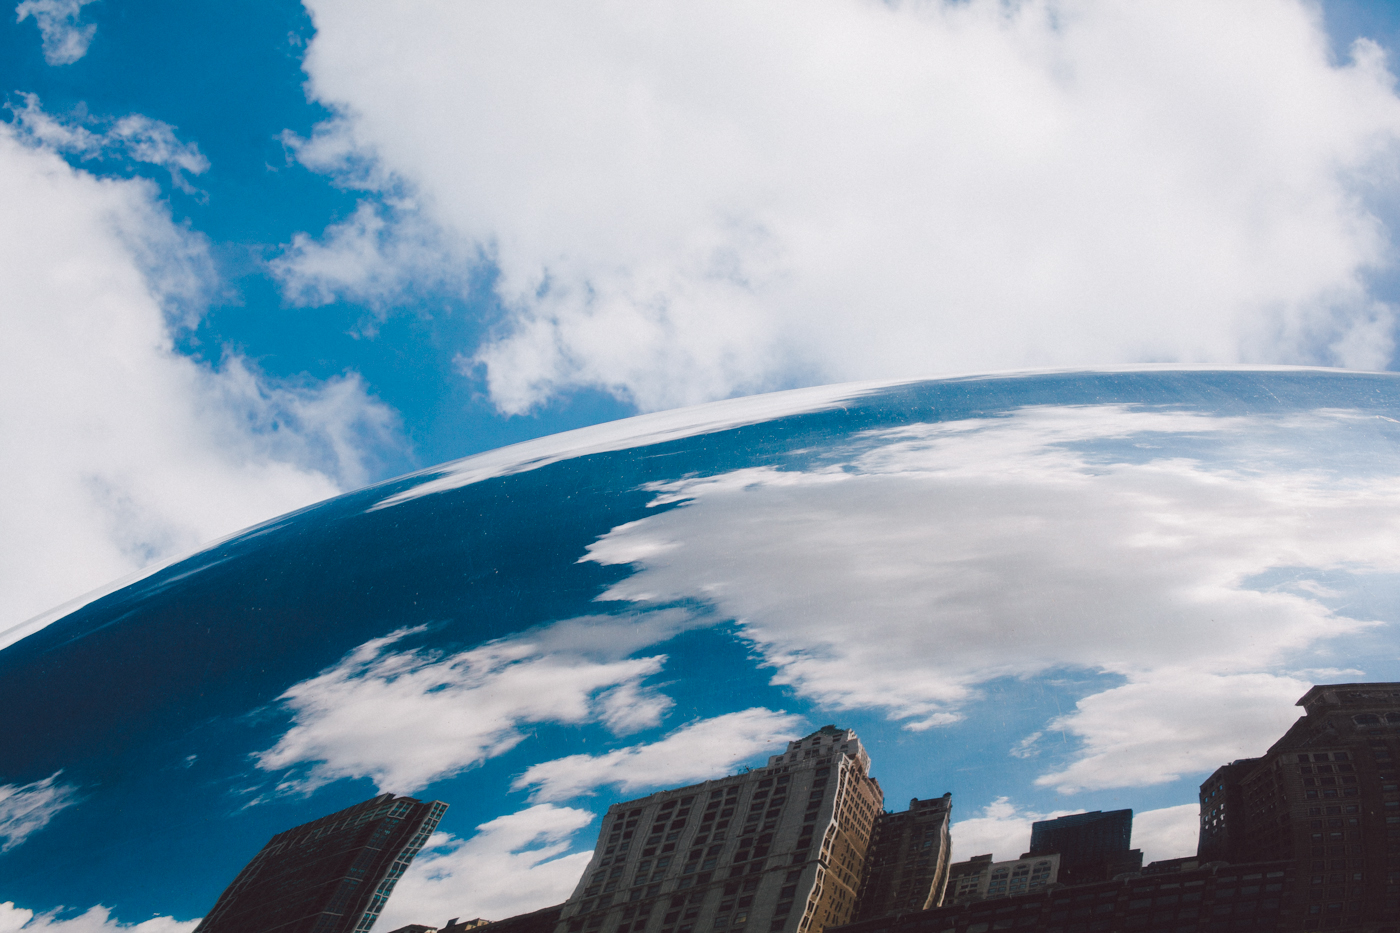 Cloud Gate - Anish Kapoor, Millennium Park